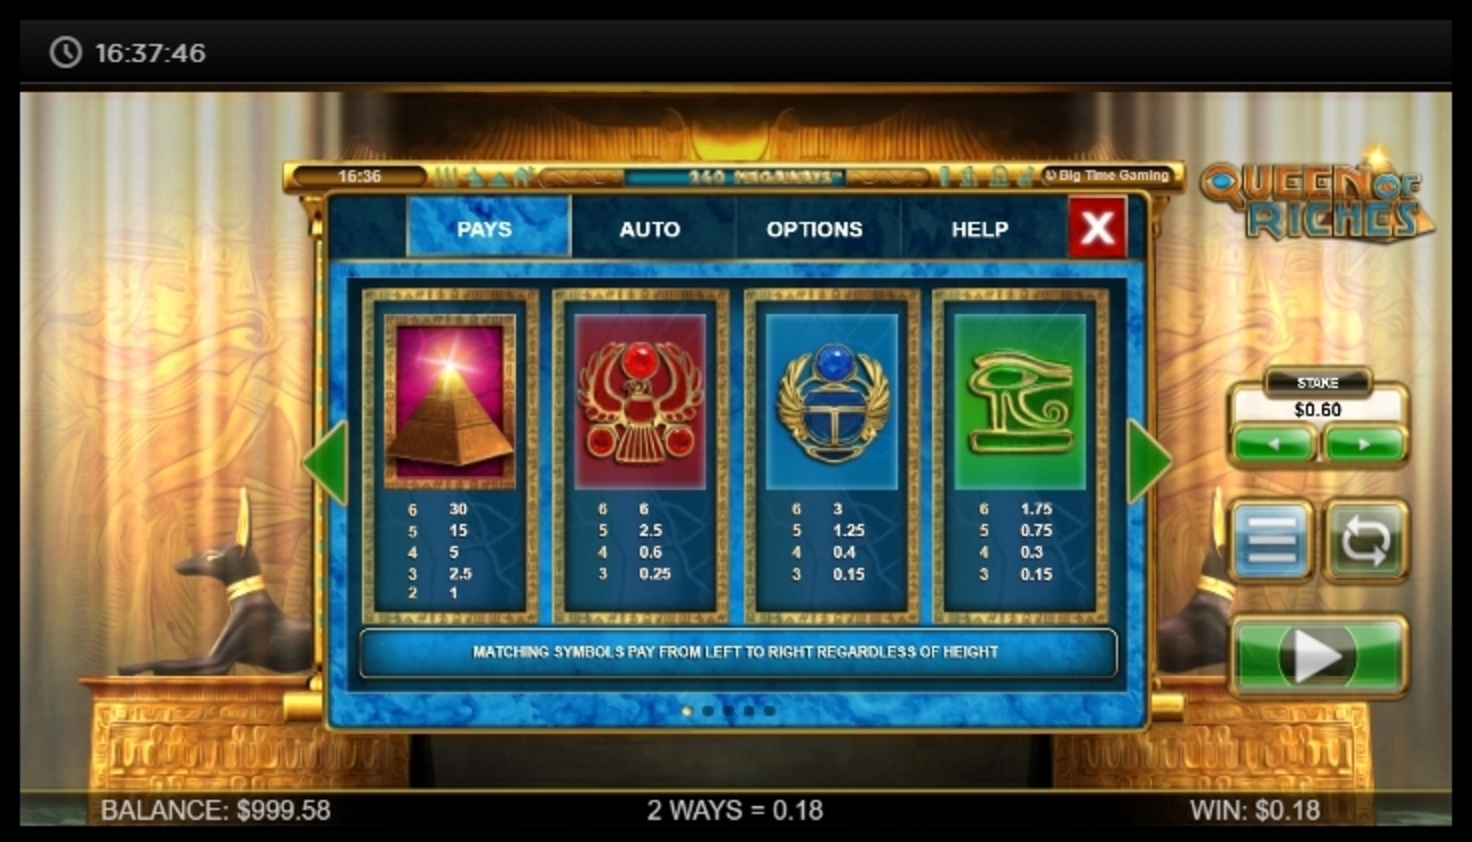 Info of Queen of Riches Slot Game by Big Time Gaming